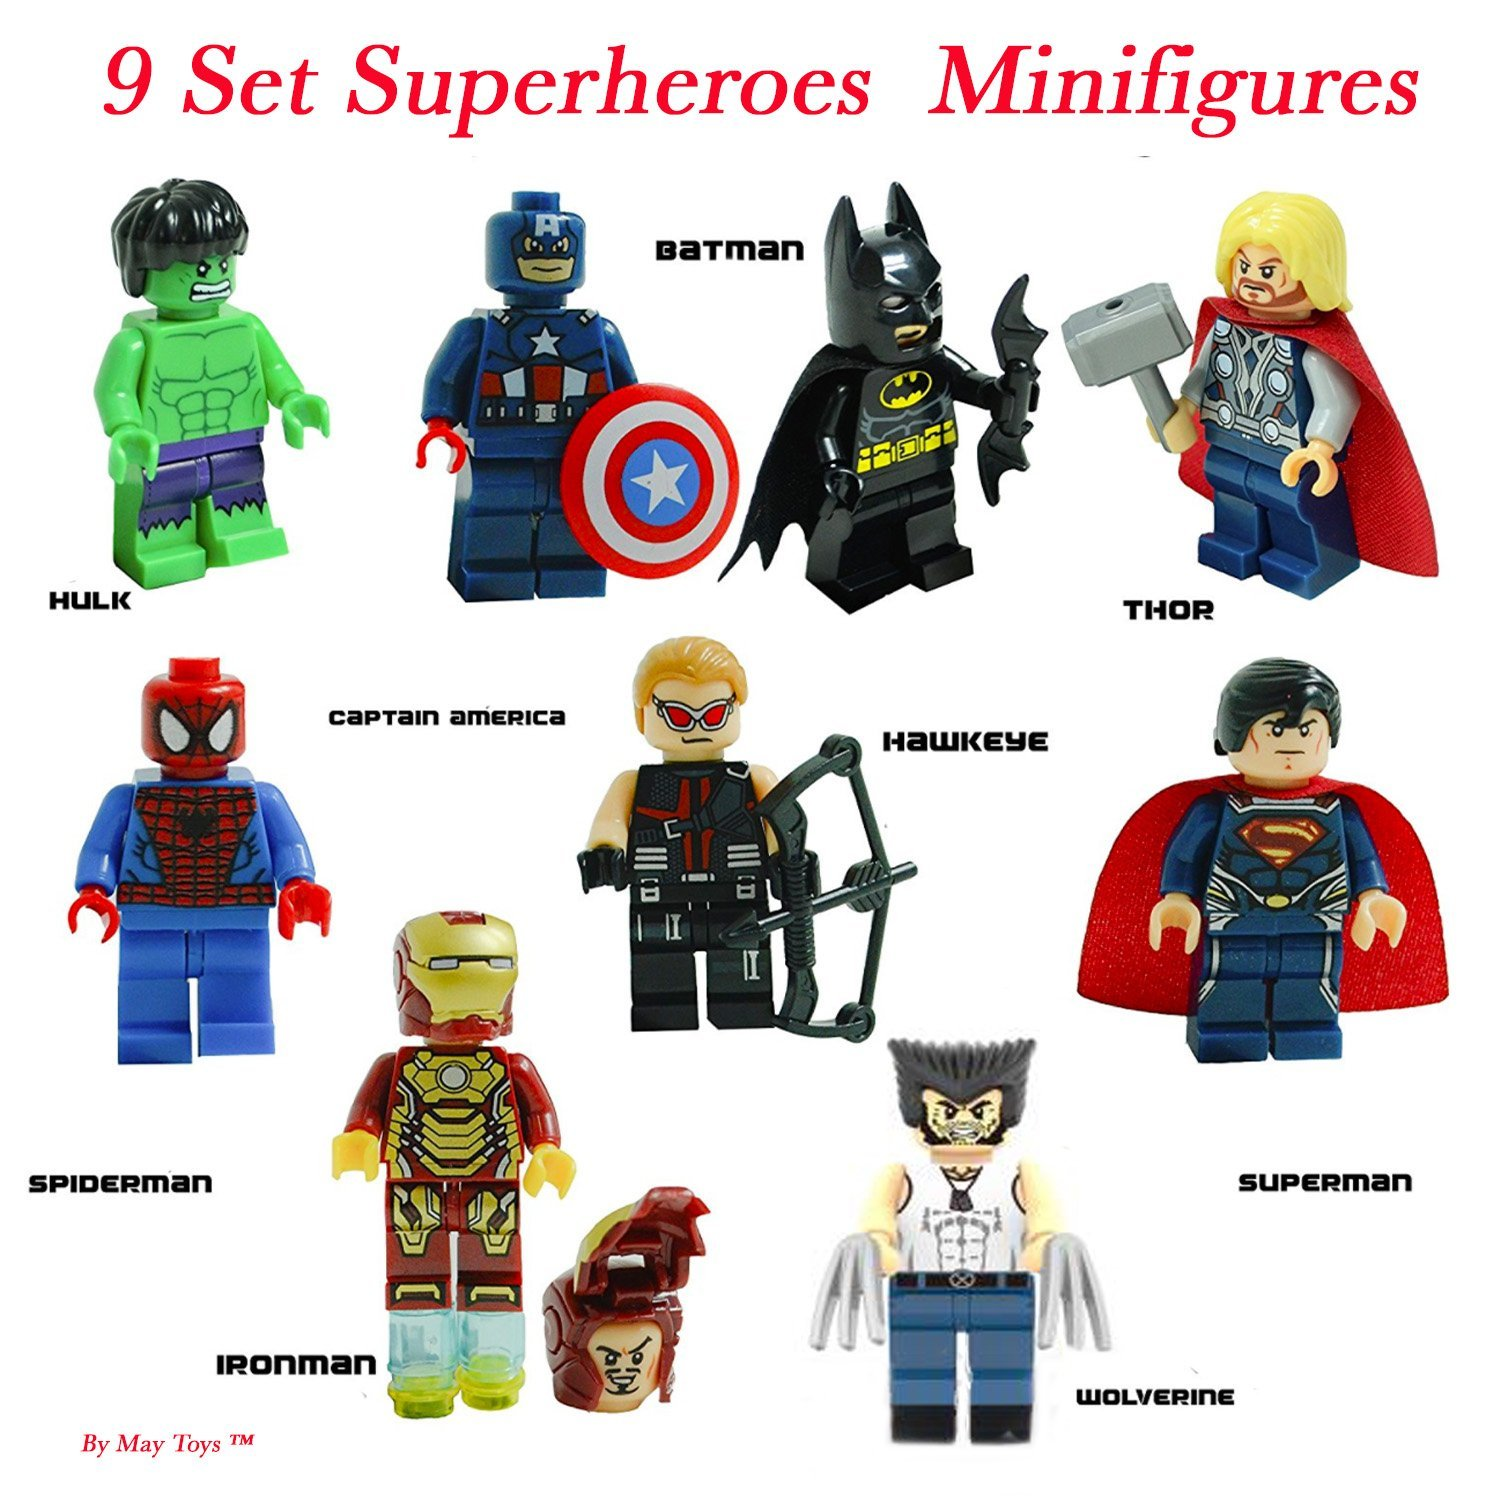 Super Heroes Figures, 9 Set Super Heroes Marvel & DC Avengers Mini Figures include Batman, Spiderman, Ironman, Thor, Superman, Wolverine, Captain America, Hawkeye, and The Hulk. Mini Figures Toys